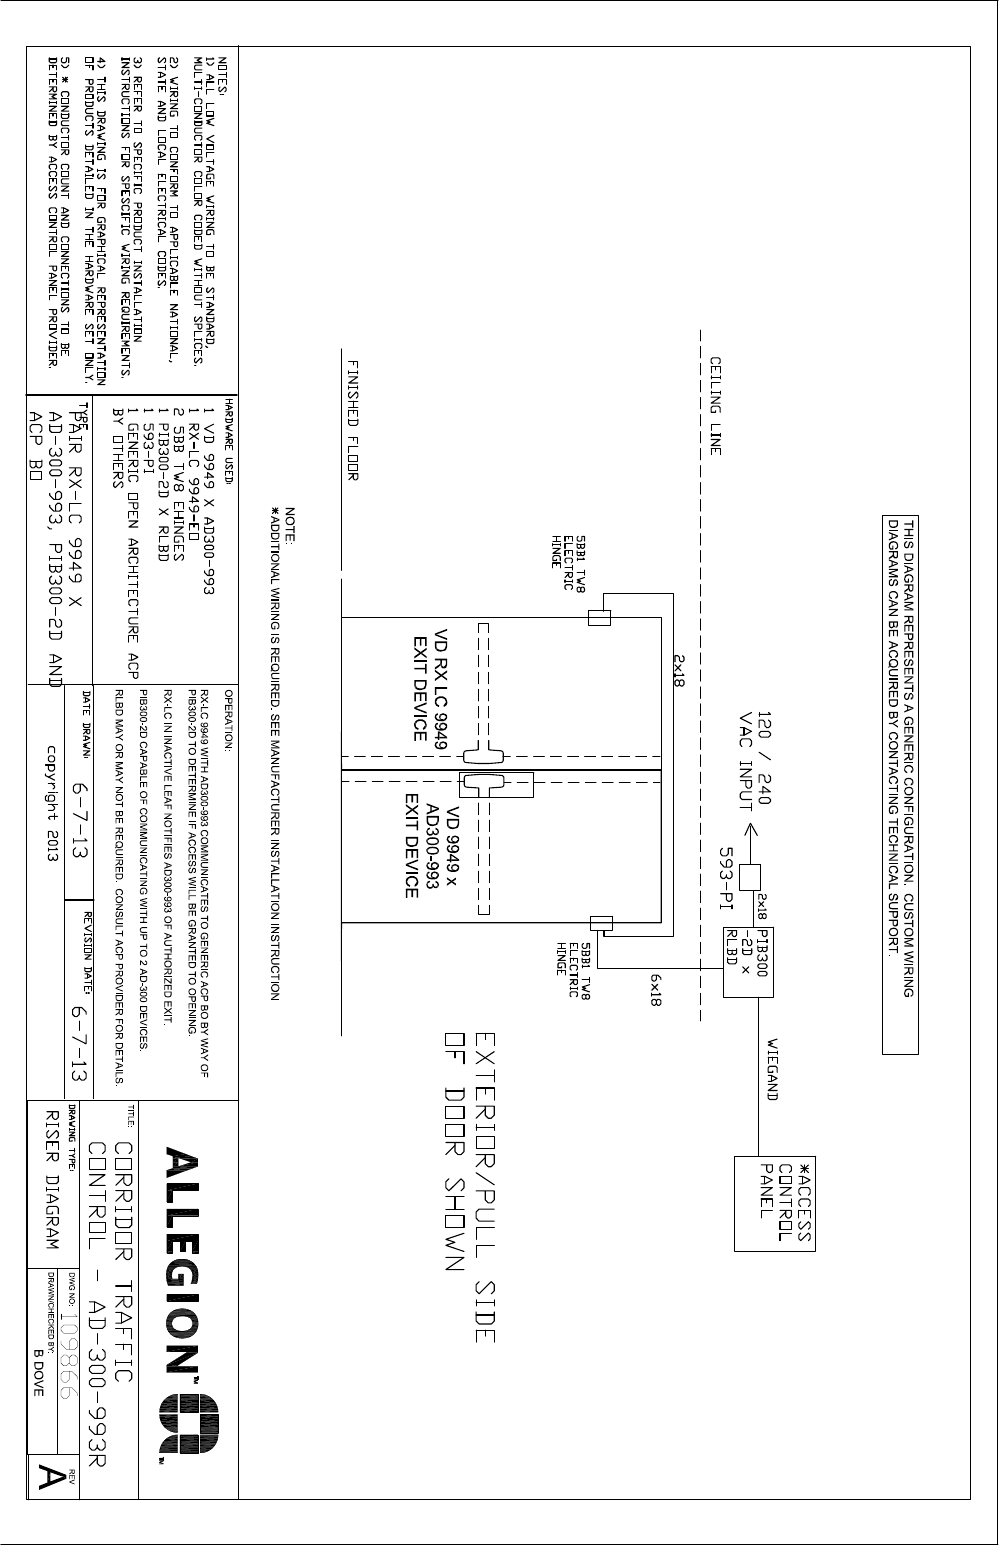 Yale Mpb040acn24c2748 Wiring Diagram Schematic Diagrams Mpb040 E Chinese 110 Atv